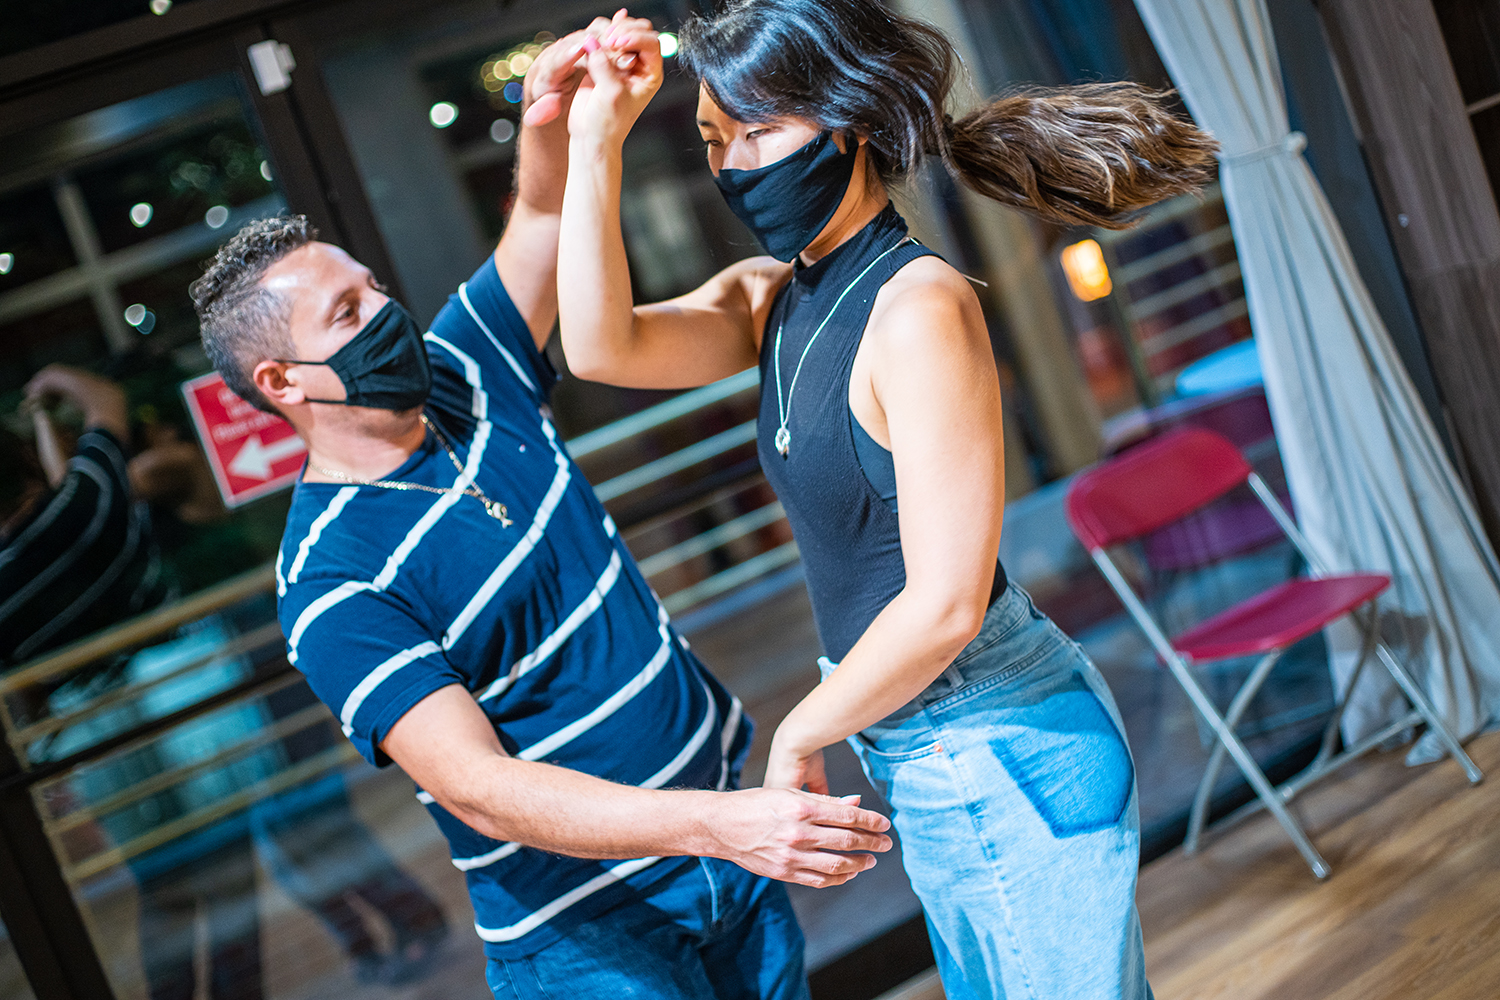 Salsa and Bachata classes during COVID-19 at the Salsa With Silvia dance studio in Bethesda. Safety precautions in place.